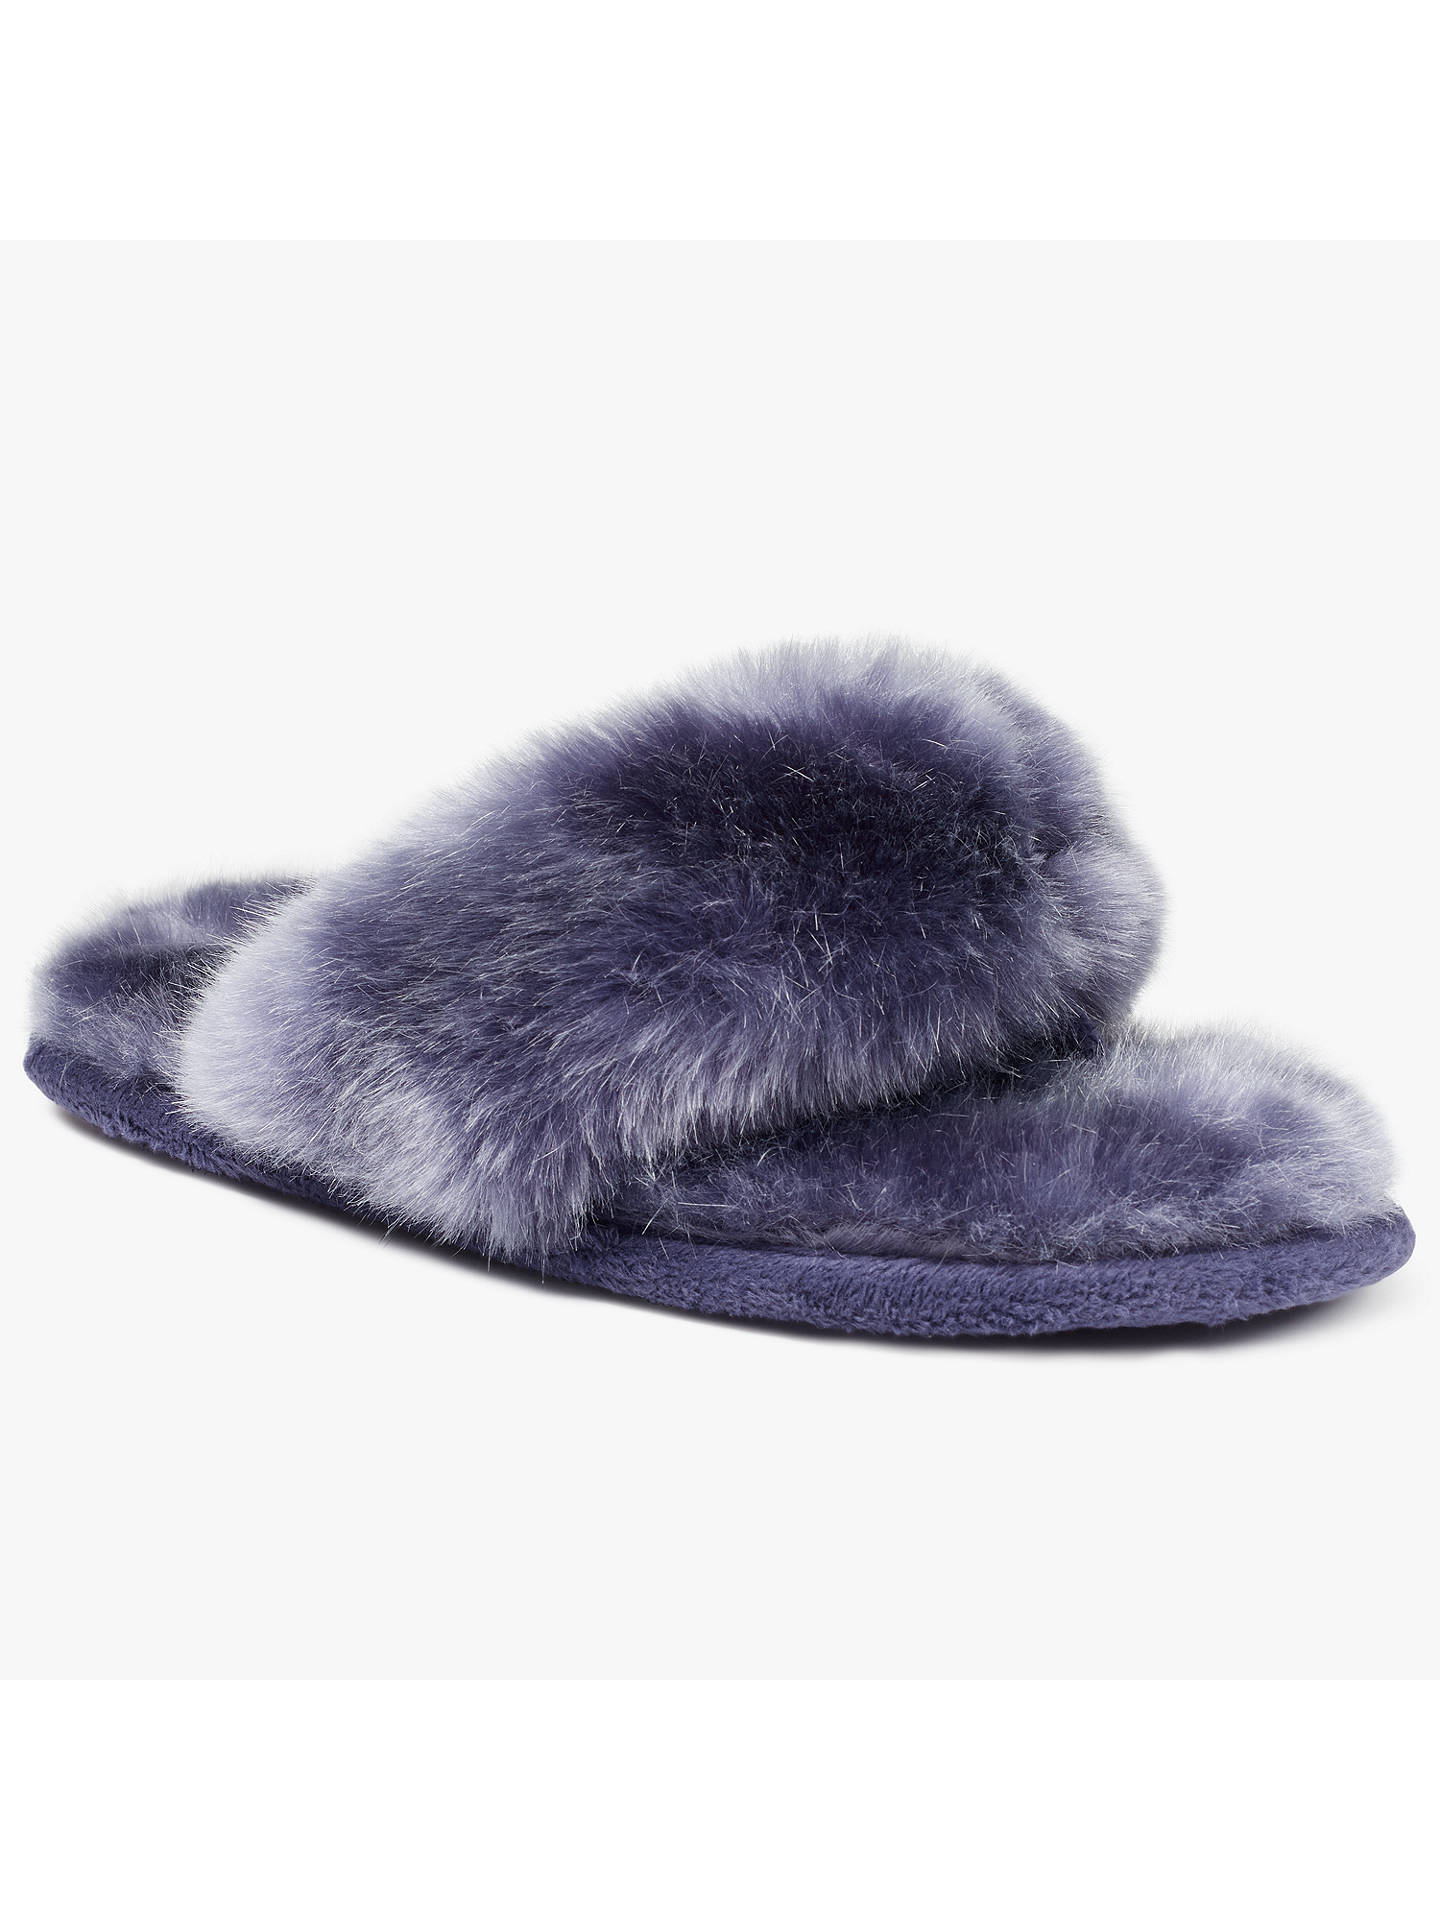 BuyJohn Lewis Faux Fur Toe Post Slippers, Purple, 3-4 Online at johnlewis.com